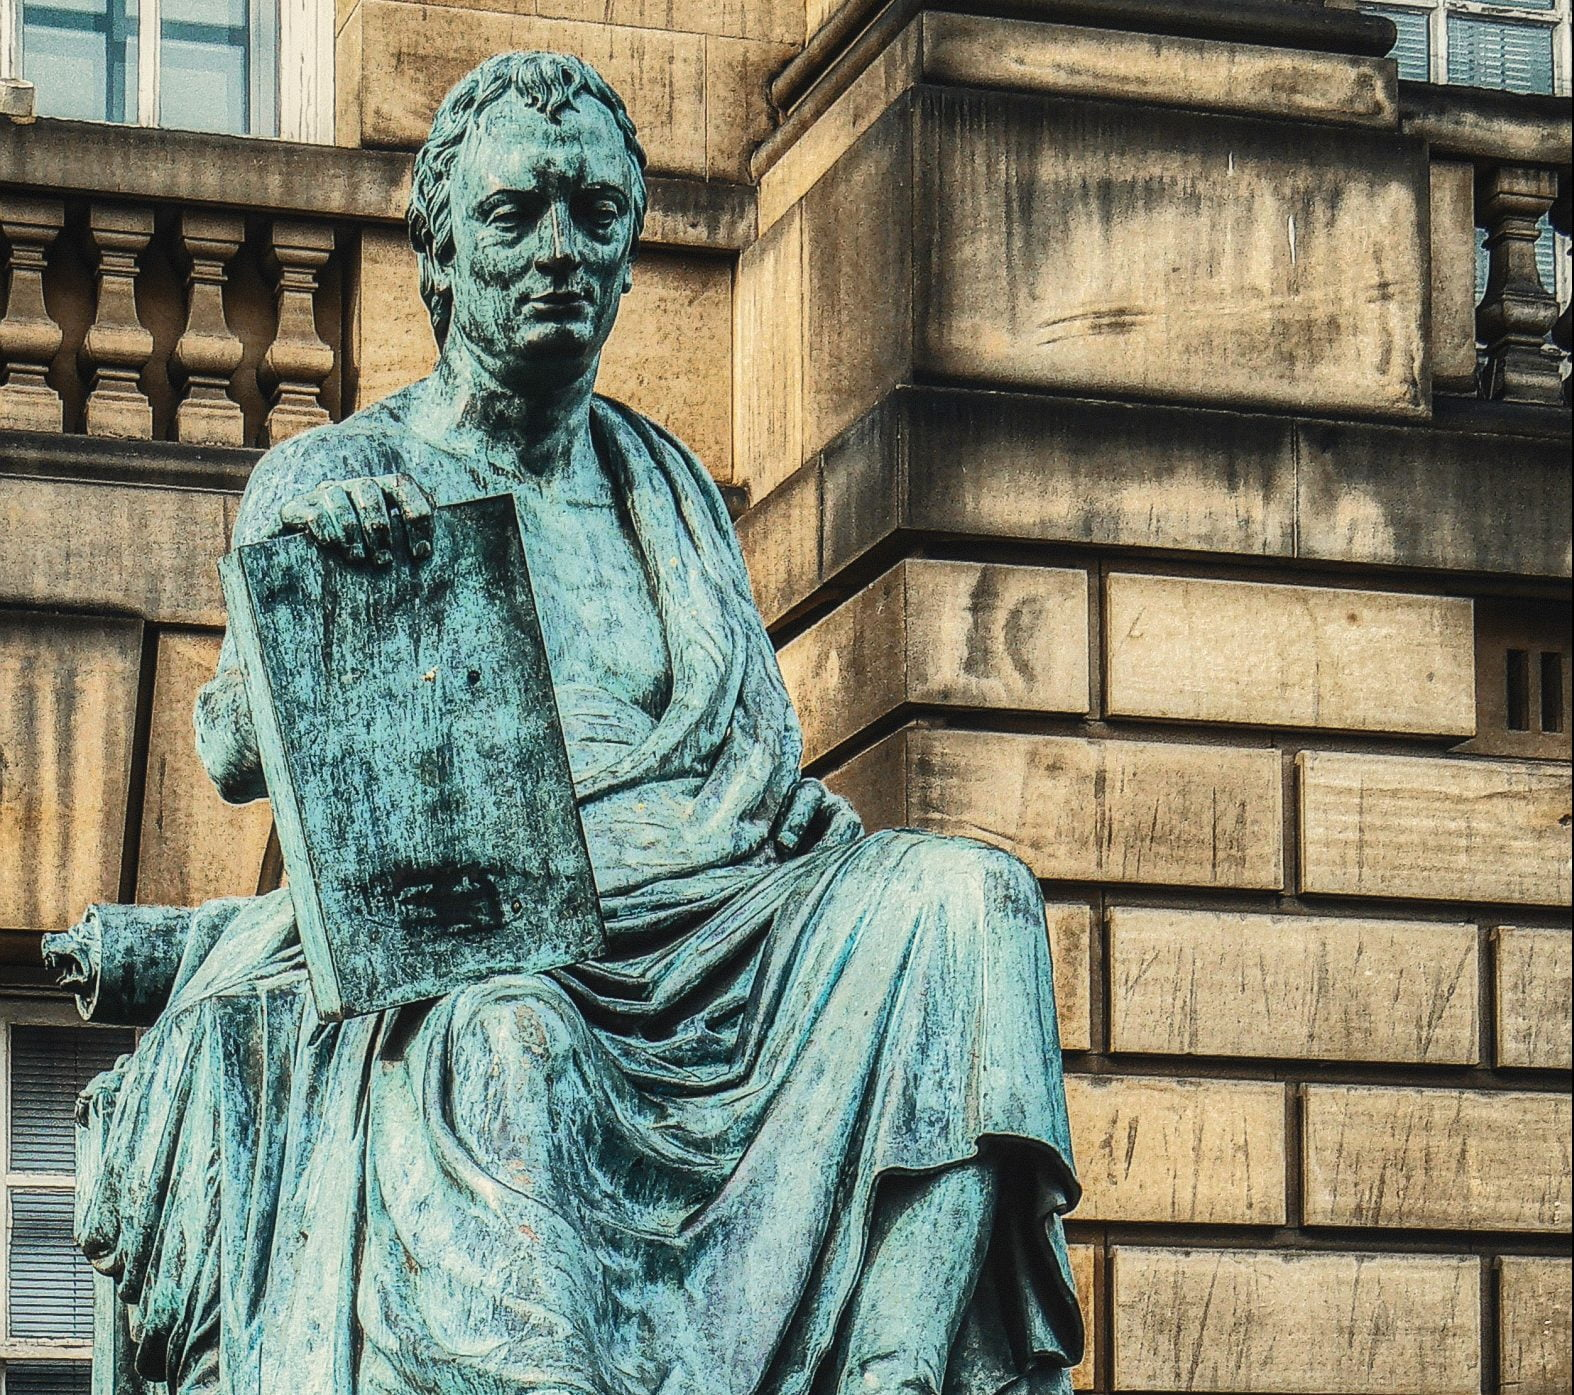 University criticised for removing David Hume's name amid racist 'distress' concerns